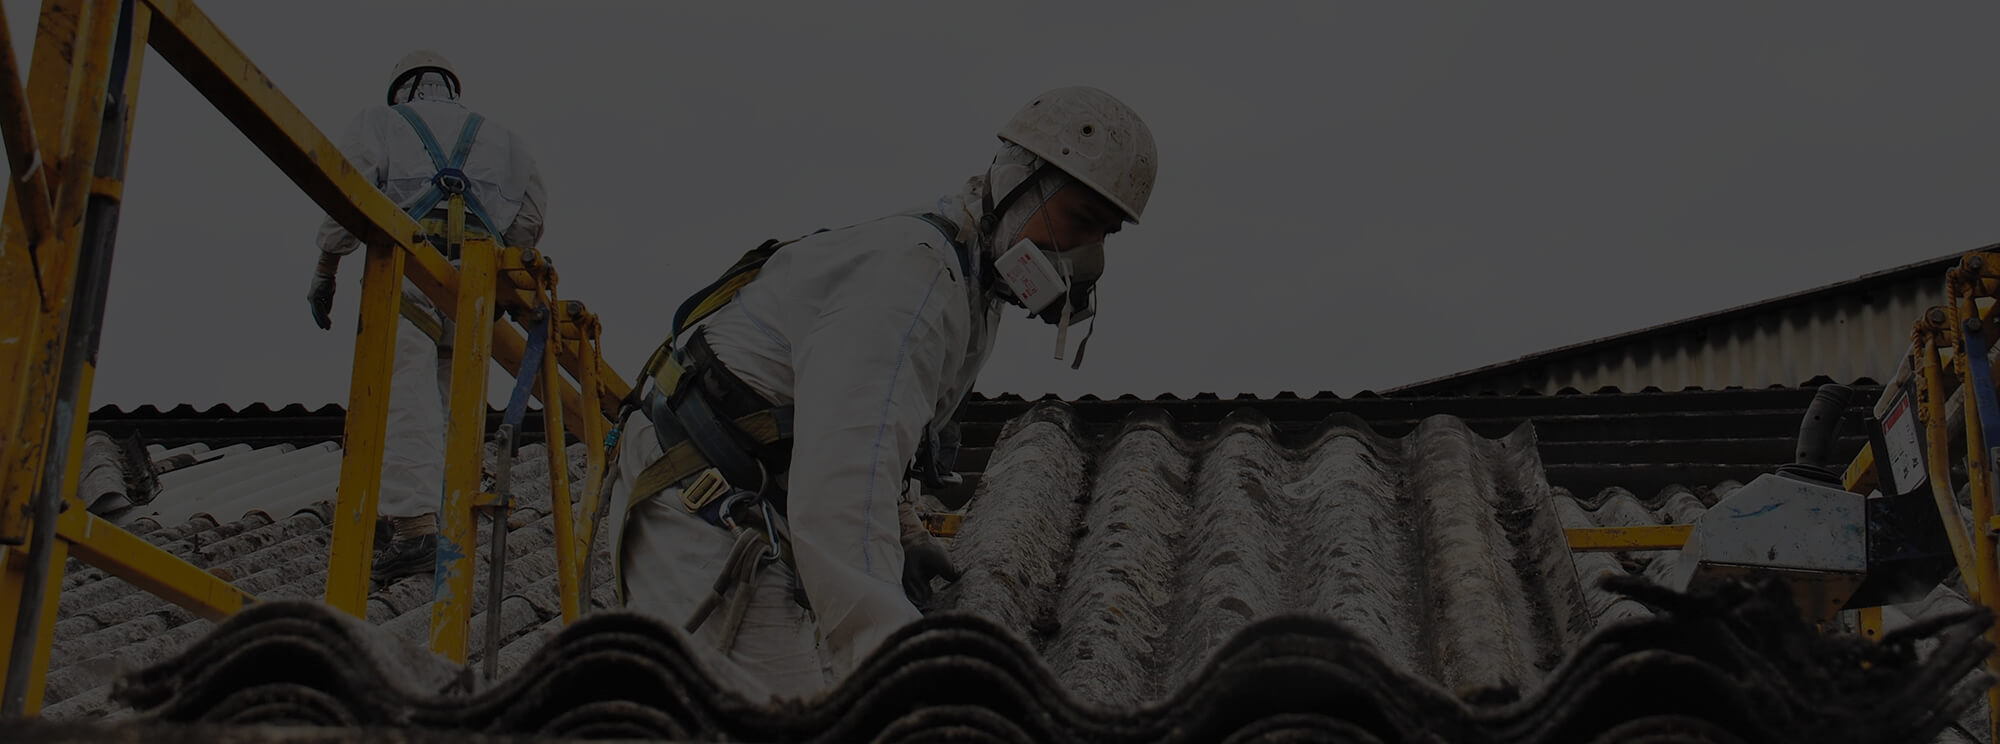 Asbestos Waste Collection - Workers on roof collecting asbestos